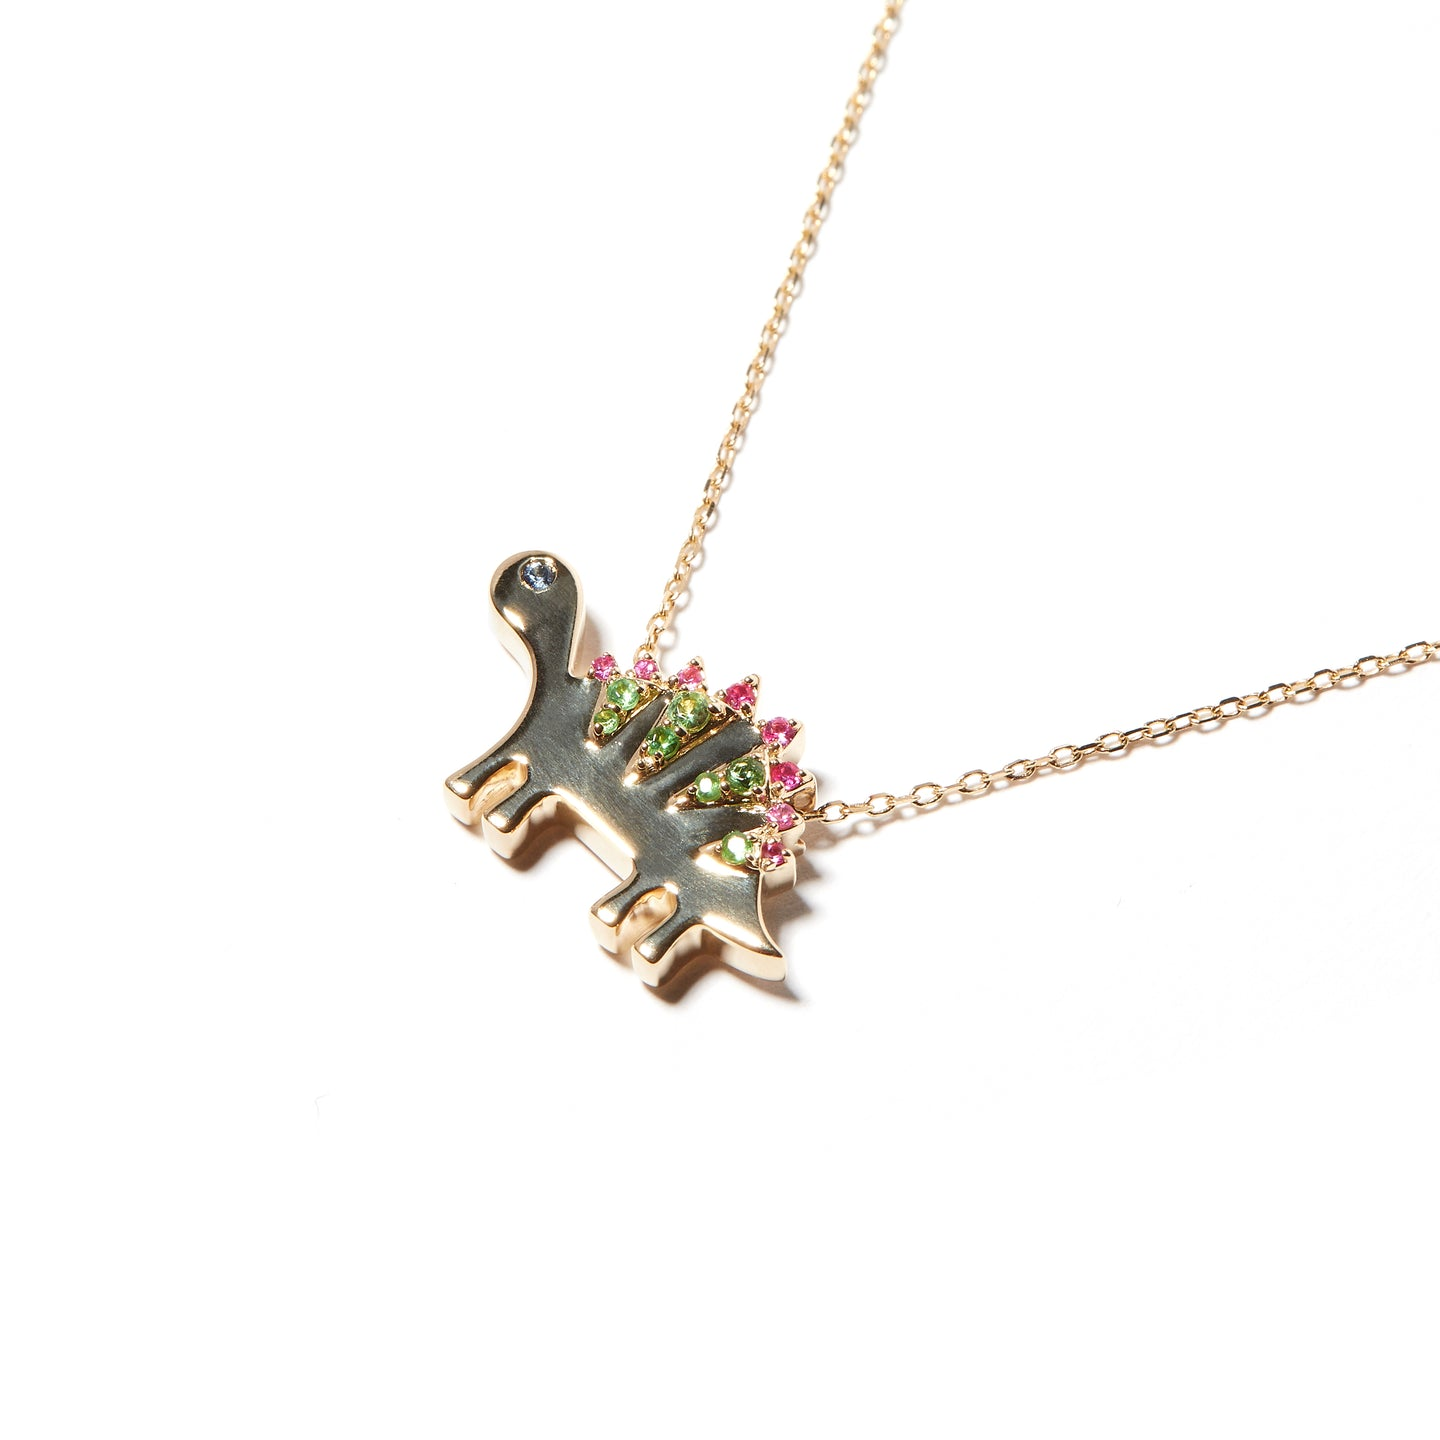 Juju Dino Charm Necklace